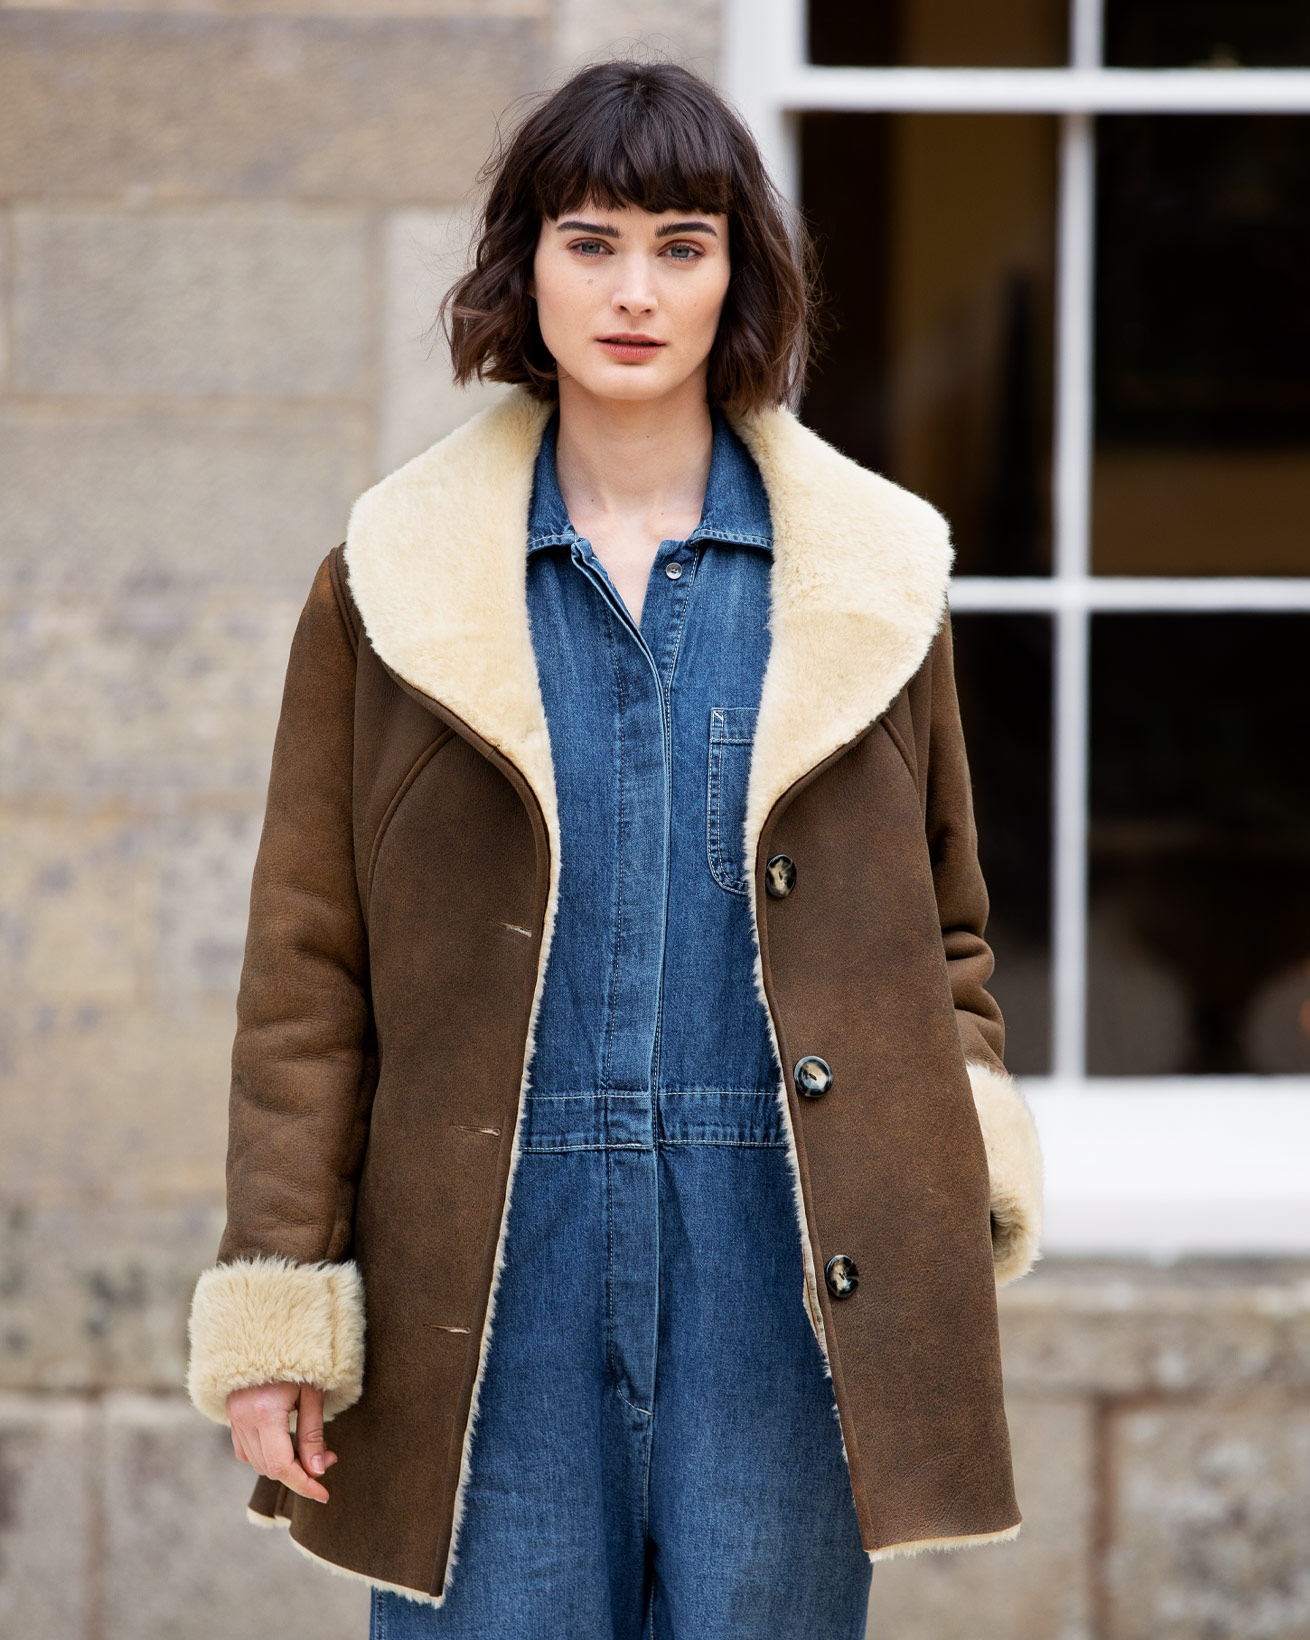 Londoner Shearling Jacket